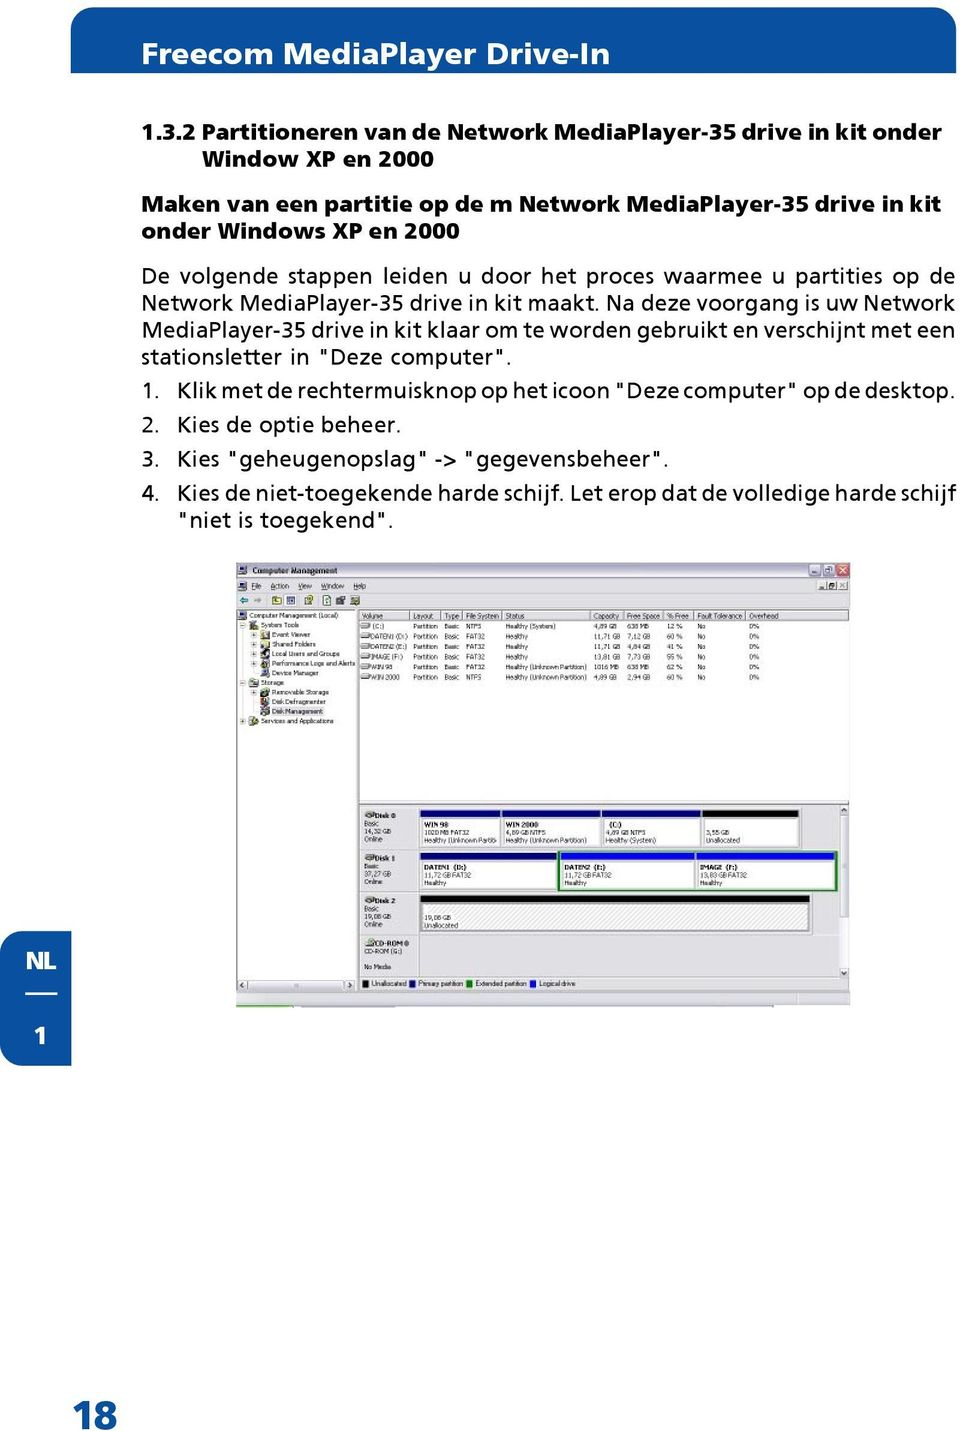 Freecom network mediaplayer drive in kit handleiding pdf - Externe verwijderbare partitie ...